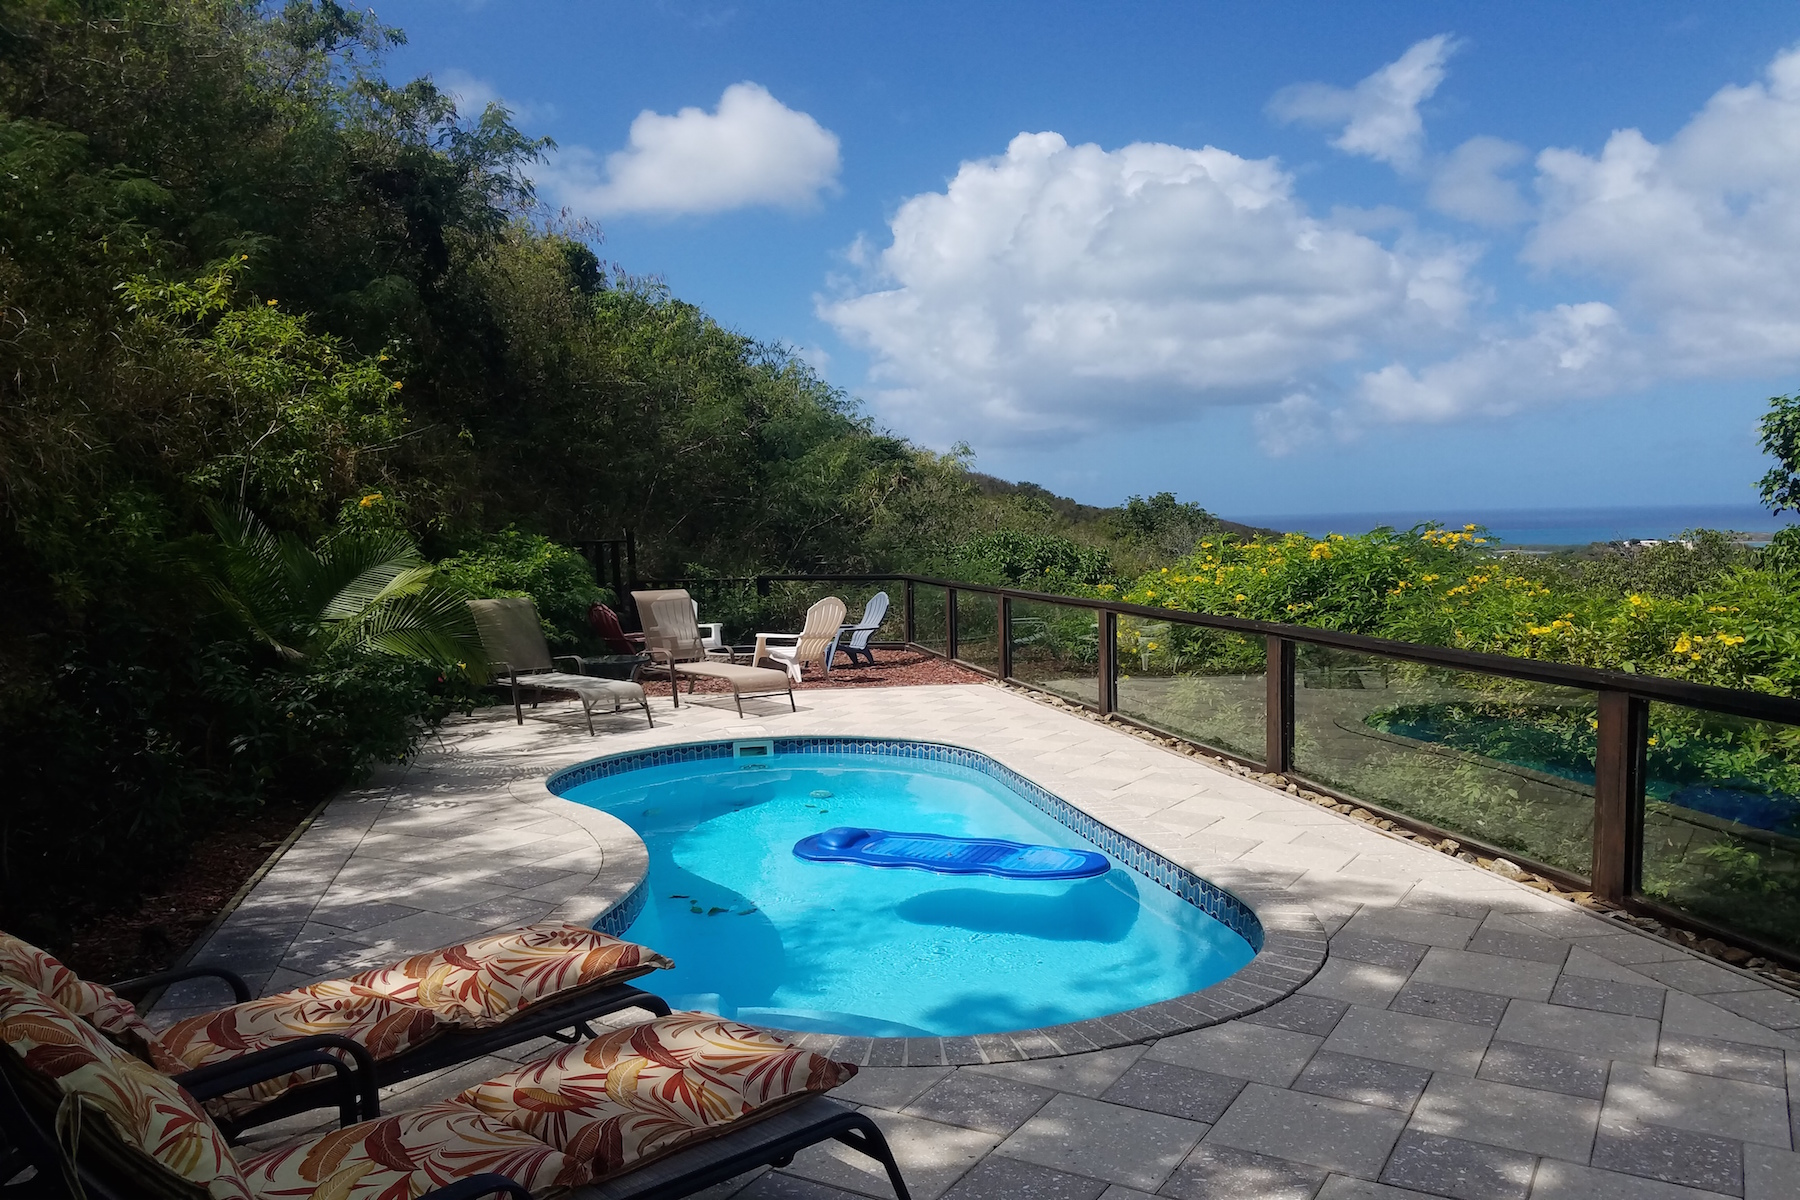 Single Family Home for Sale at 185A Union & Mt. Washington St Croix, Virgin Islands 00820 United States Virgin Islands